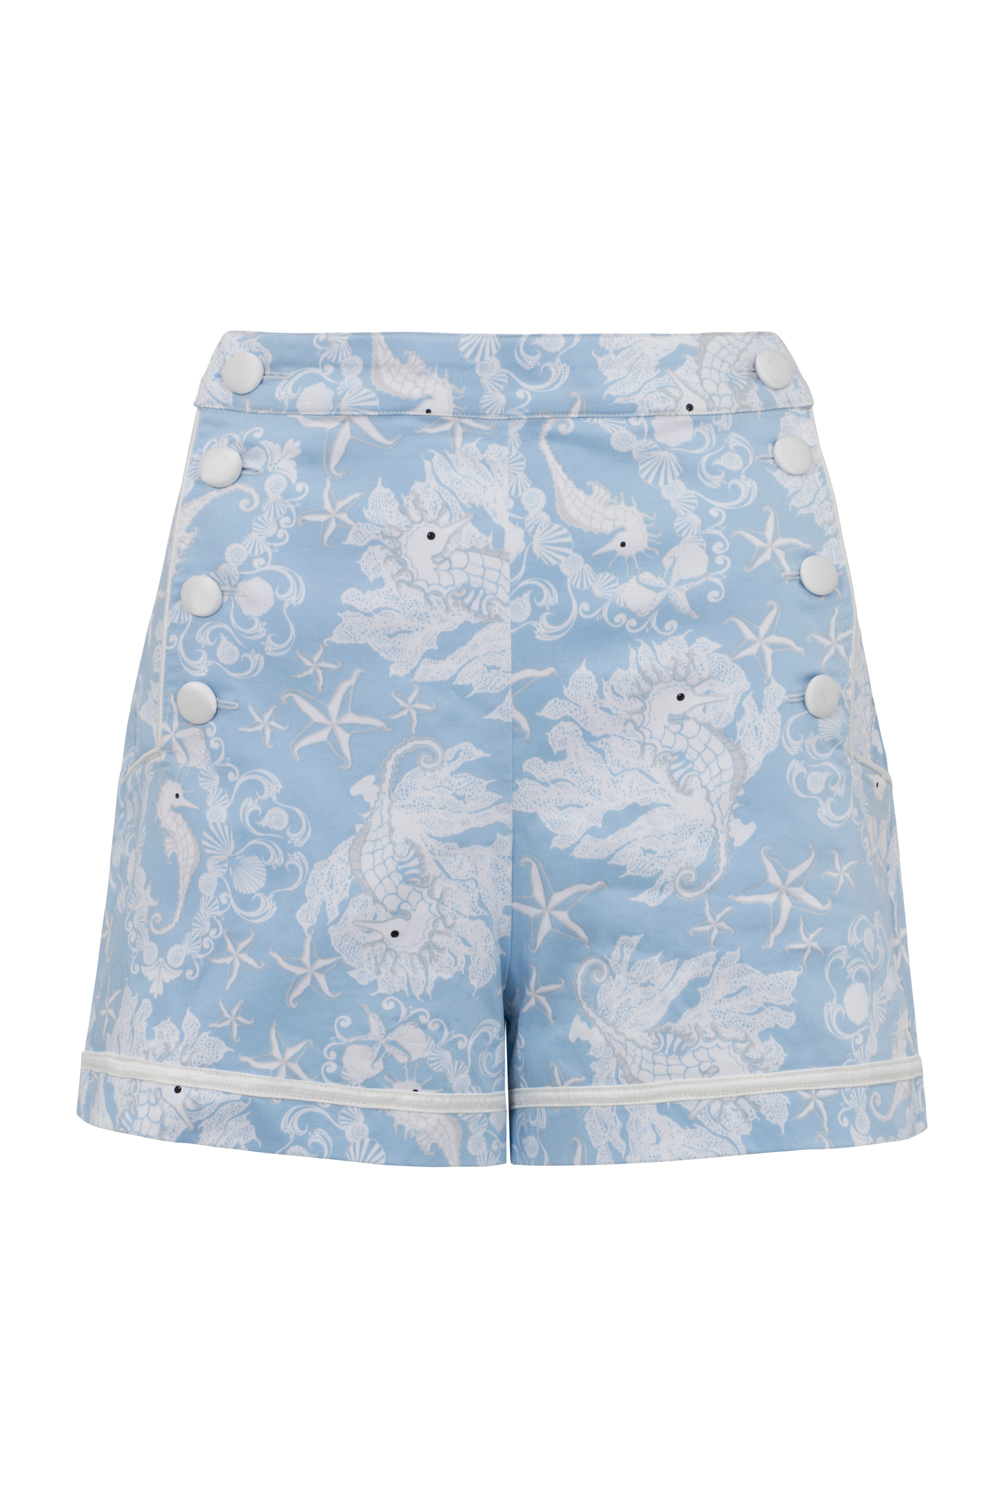 Jeanette Seahorse Print Shorts